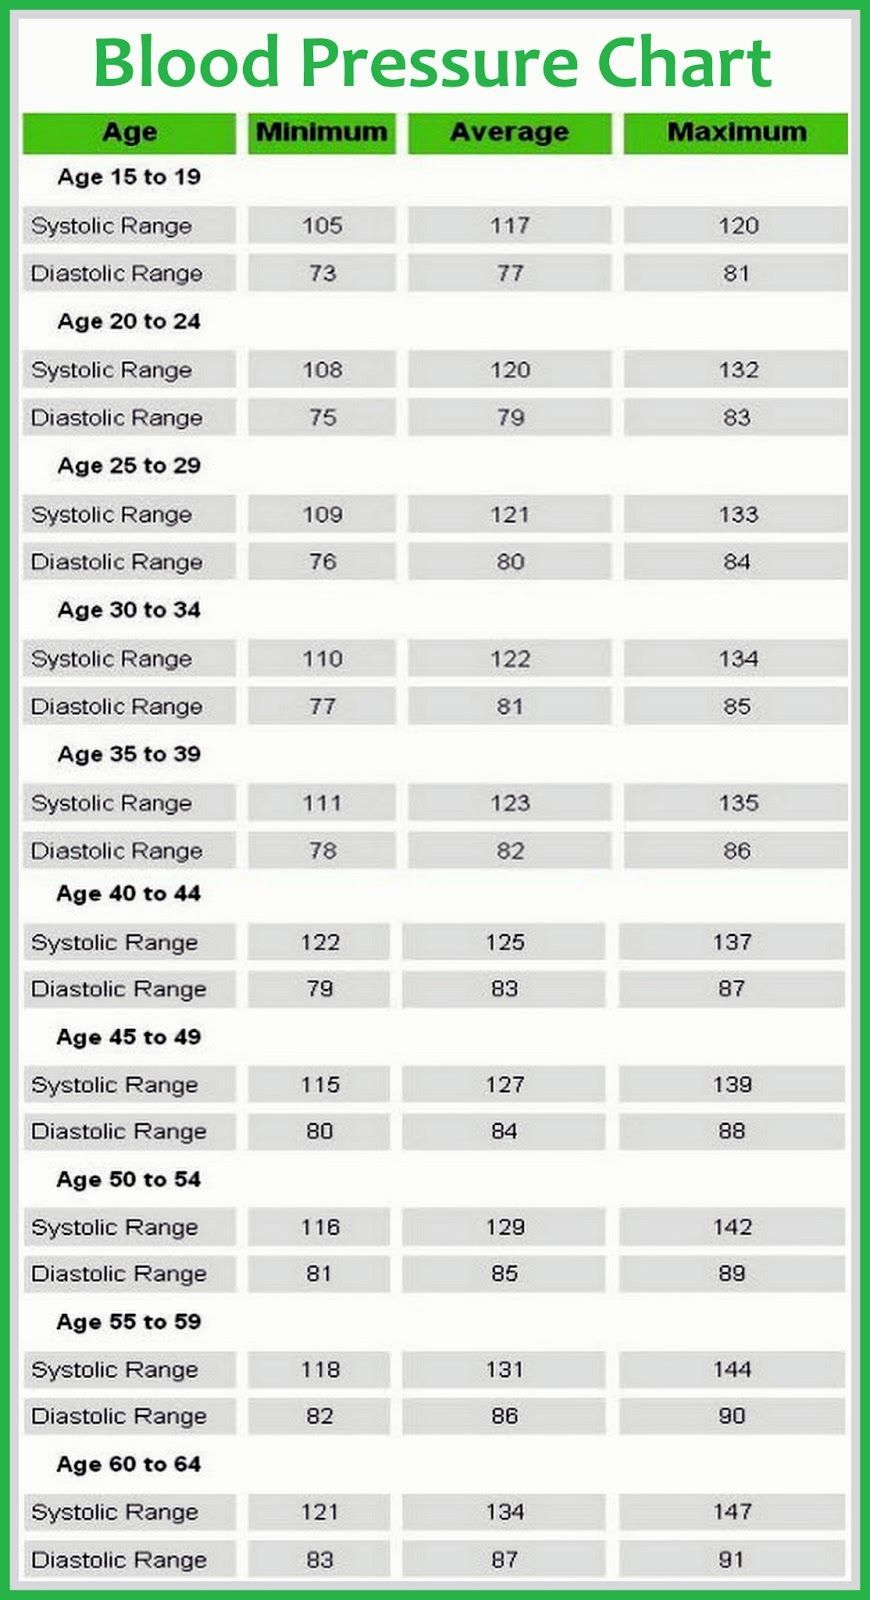 Blood pressure chart health tips in pics charts pinterest blood pressure chart health tips in pics nvjuhfo Image collections